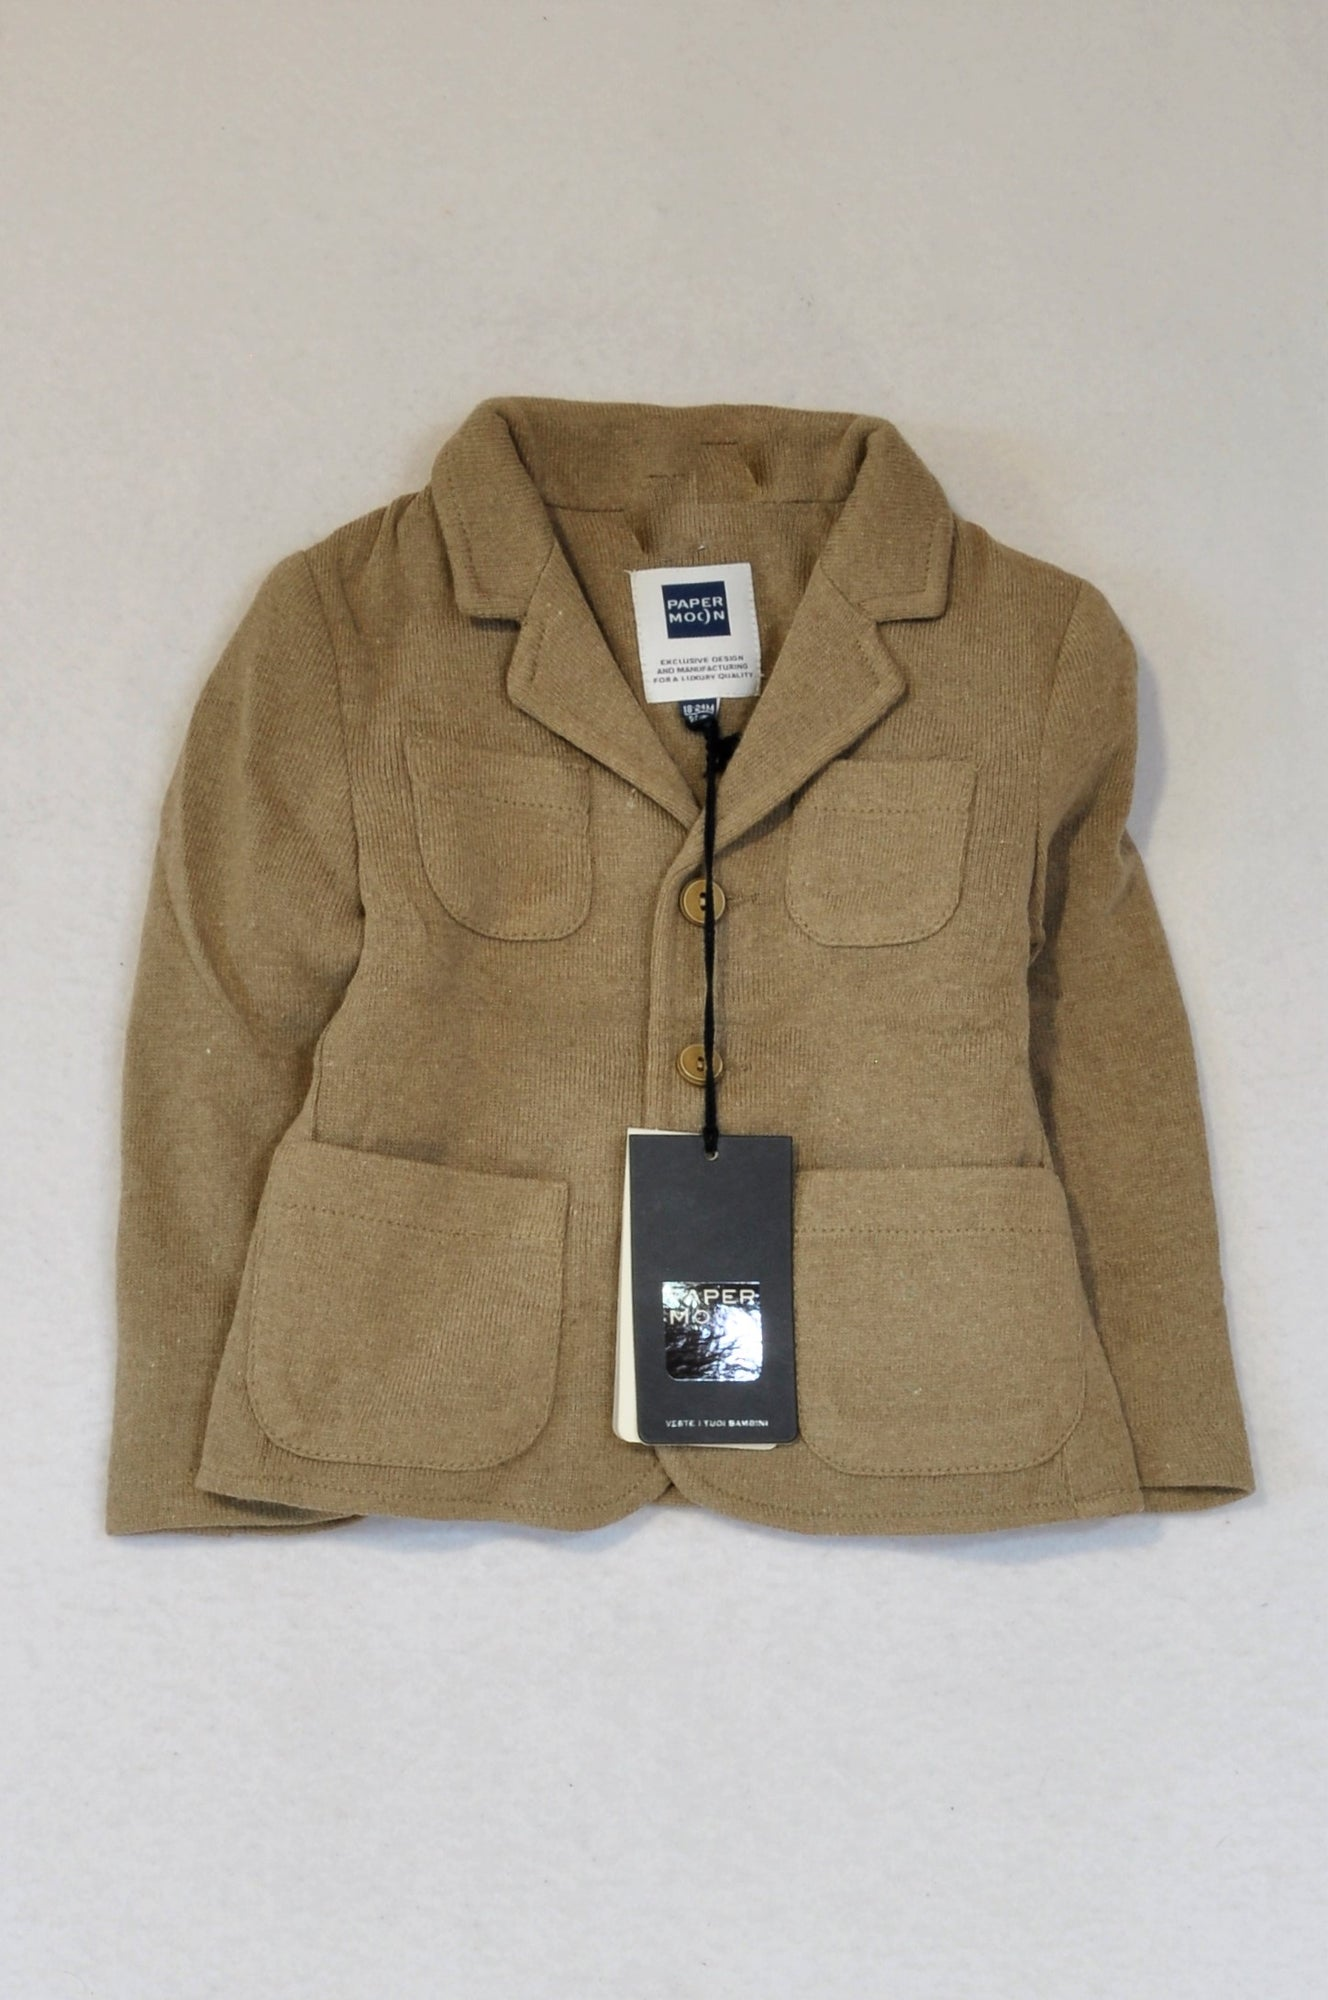 New Paper Moon Brown Knit Jacket Unisex 18-24 months